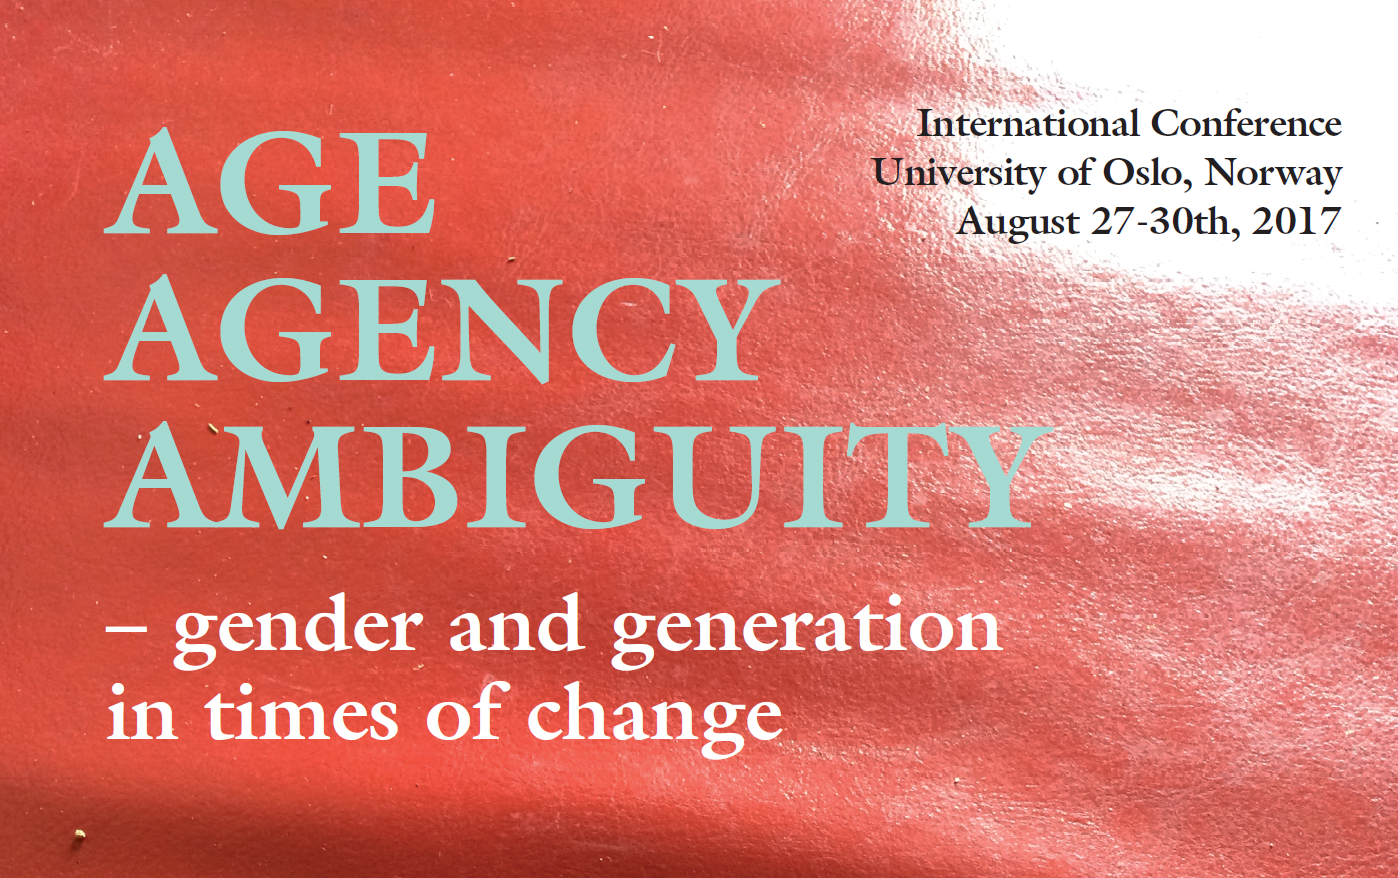 "International Conference ""Age Agency Ambiguity - gender and generation in times of change"", University of Oslo, Aug. 27 - 30, 2017."